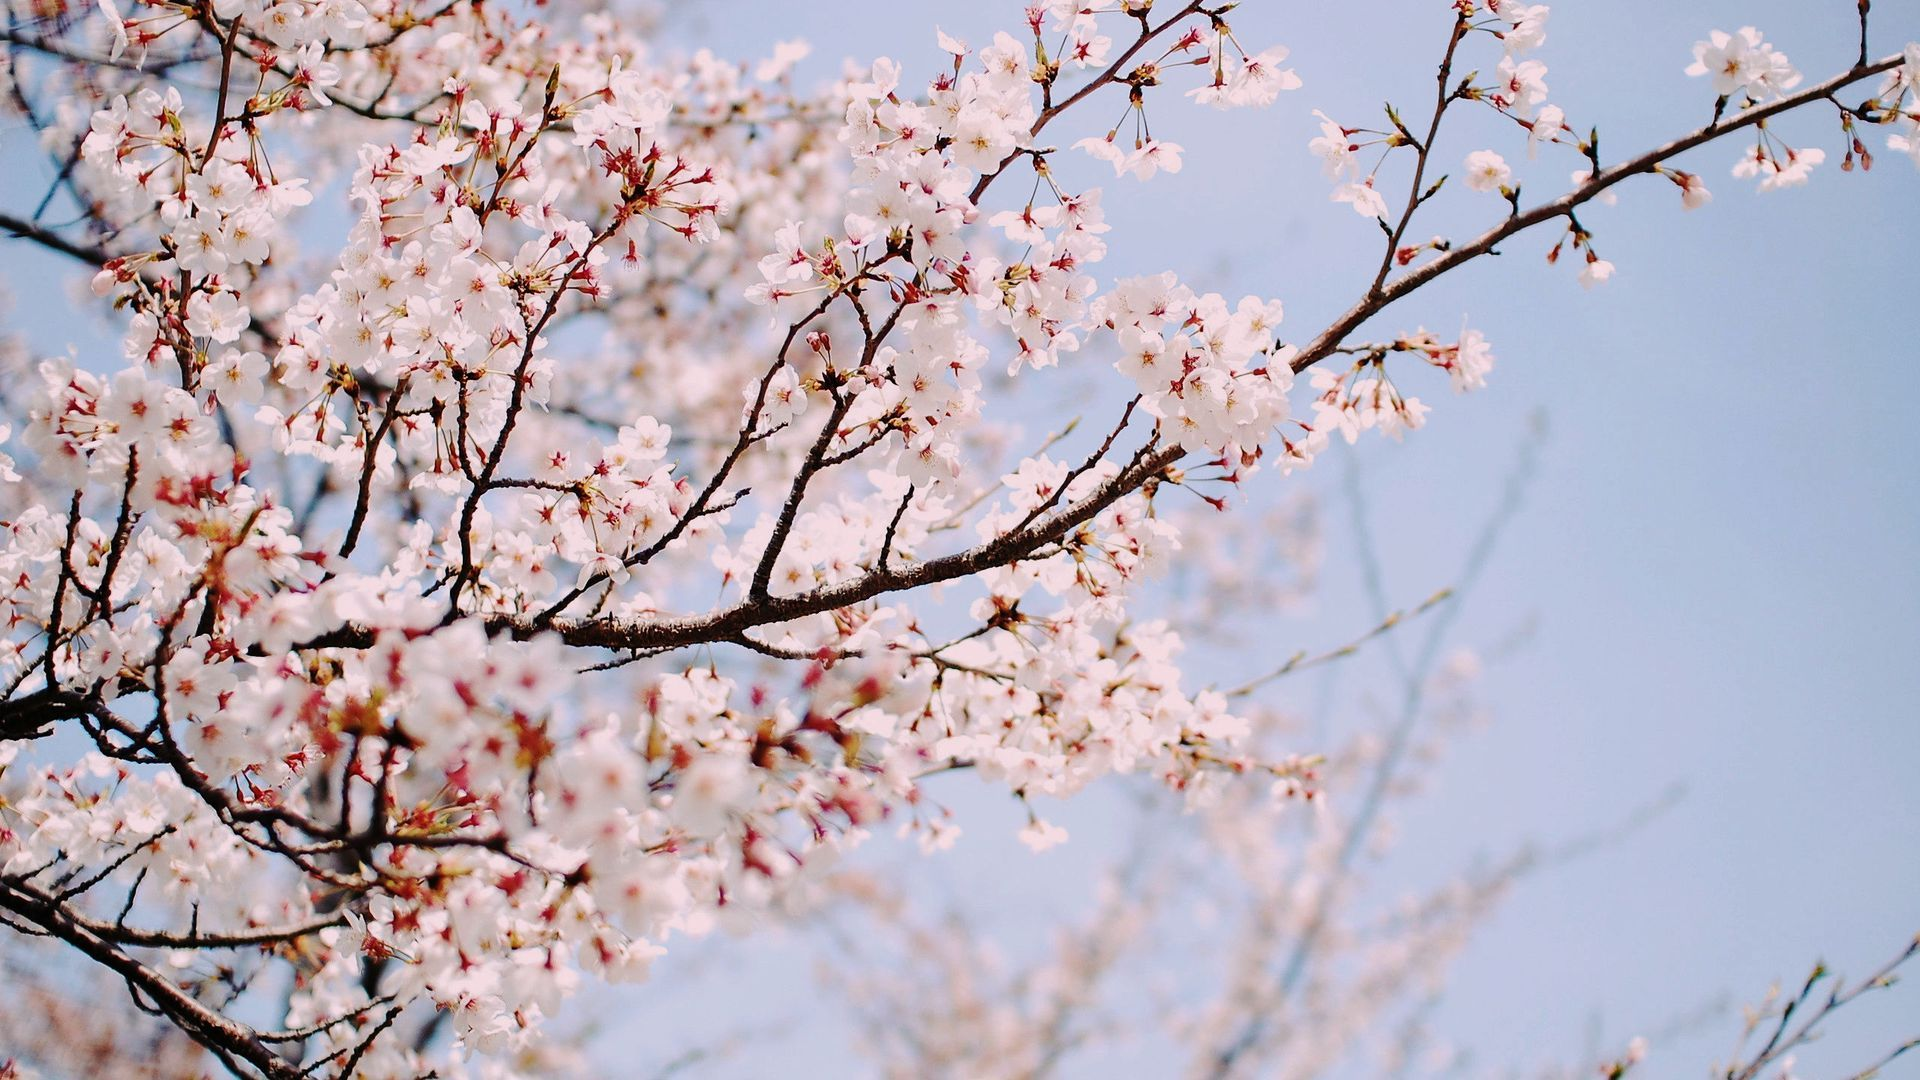 2jae What The Spring Completed Cherry Blossom Background Cherry Blossom Wallpaper Anime Cherry Blossom